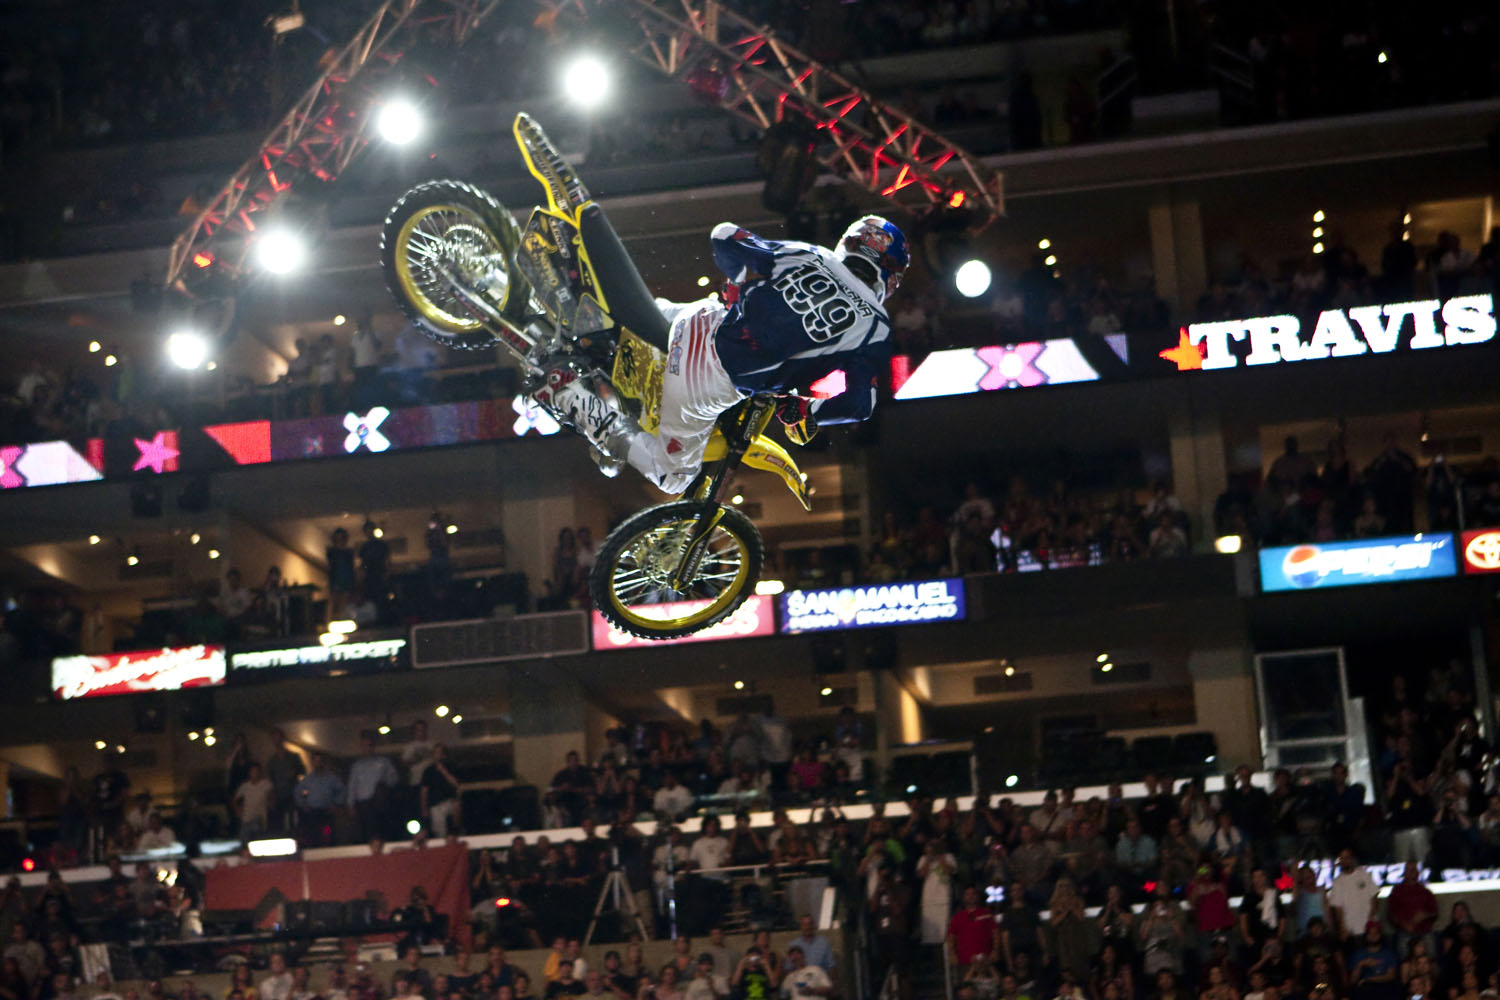 Travis Pastrana takes part in the Moto X Best Trick as part of Summer X Games 15 at Staples Center on July 31, 2009 in Los Angeles, California.